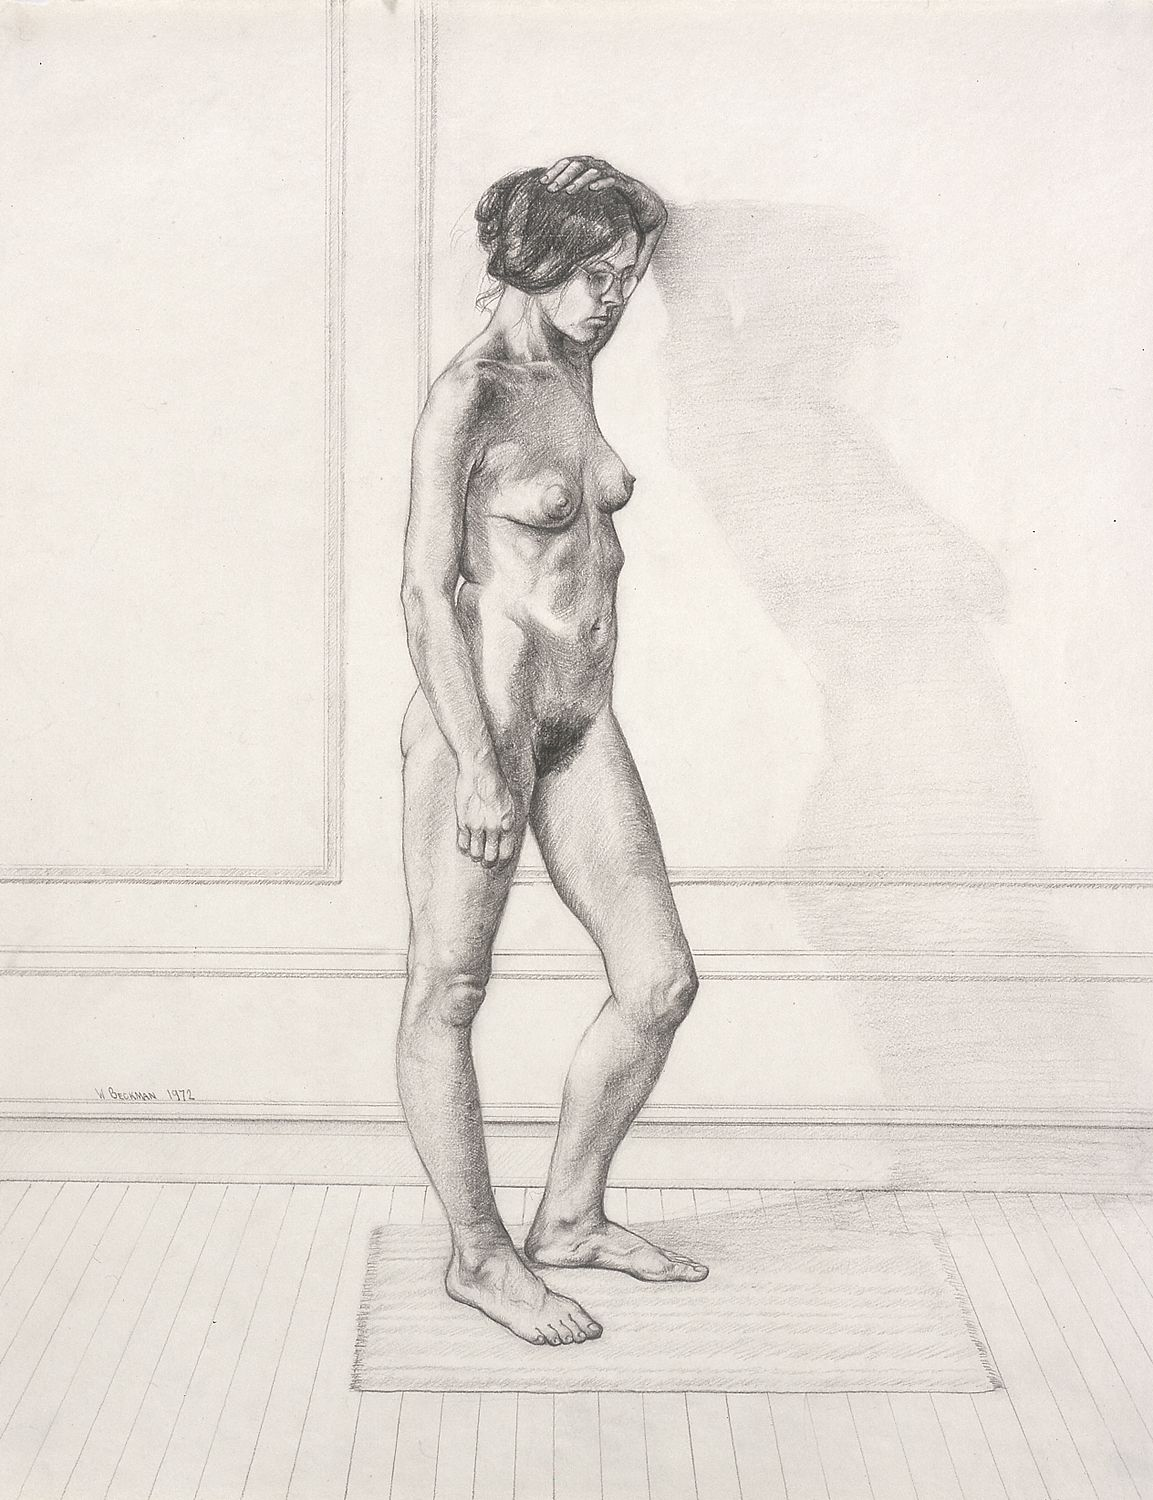 """William Beckman, Study for """"Diana #1"""", facing right, 1972, pencil on paper, 23 x 18 inches"""